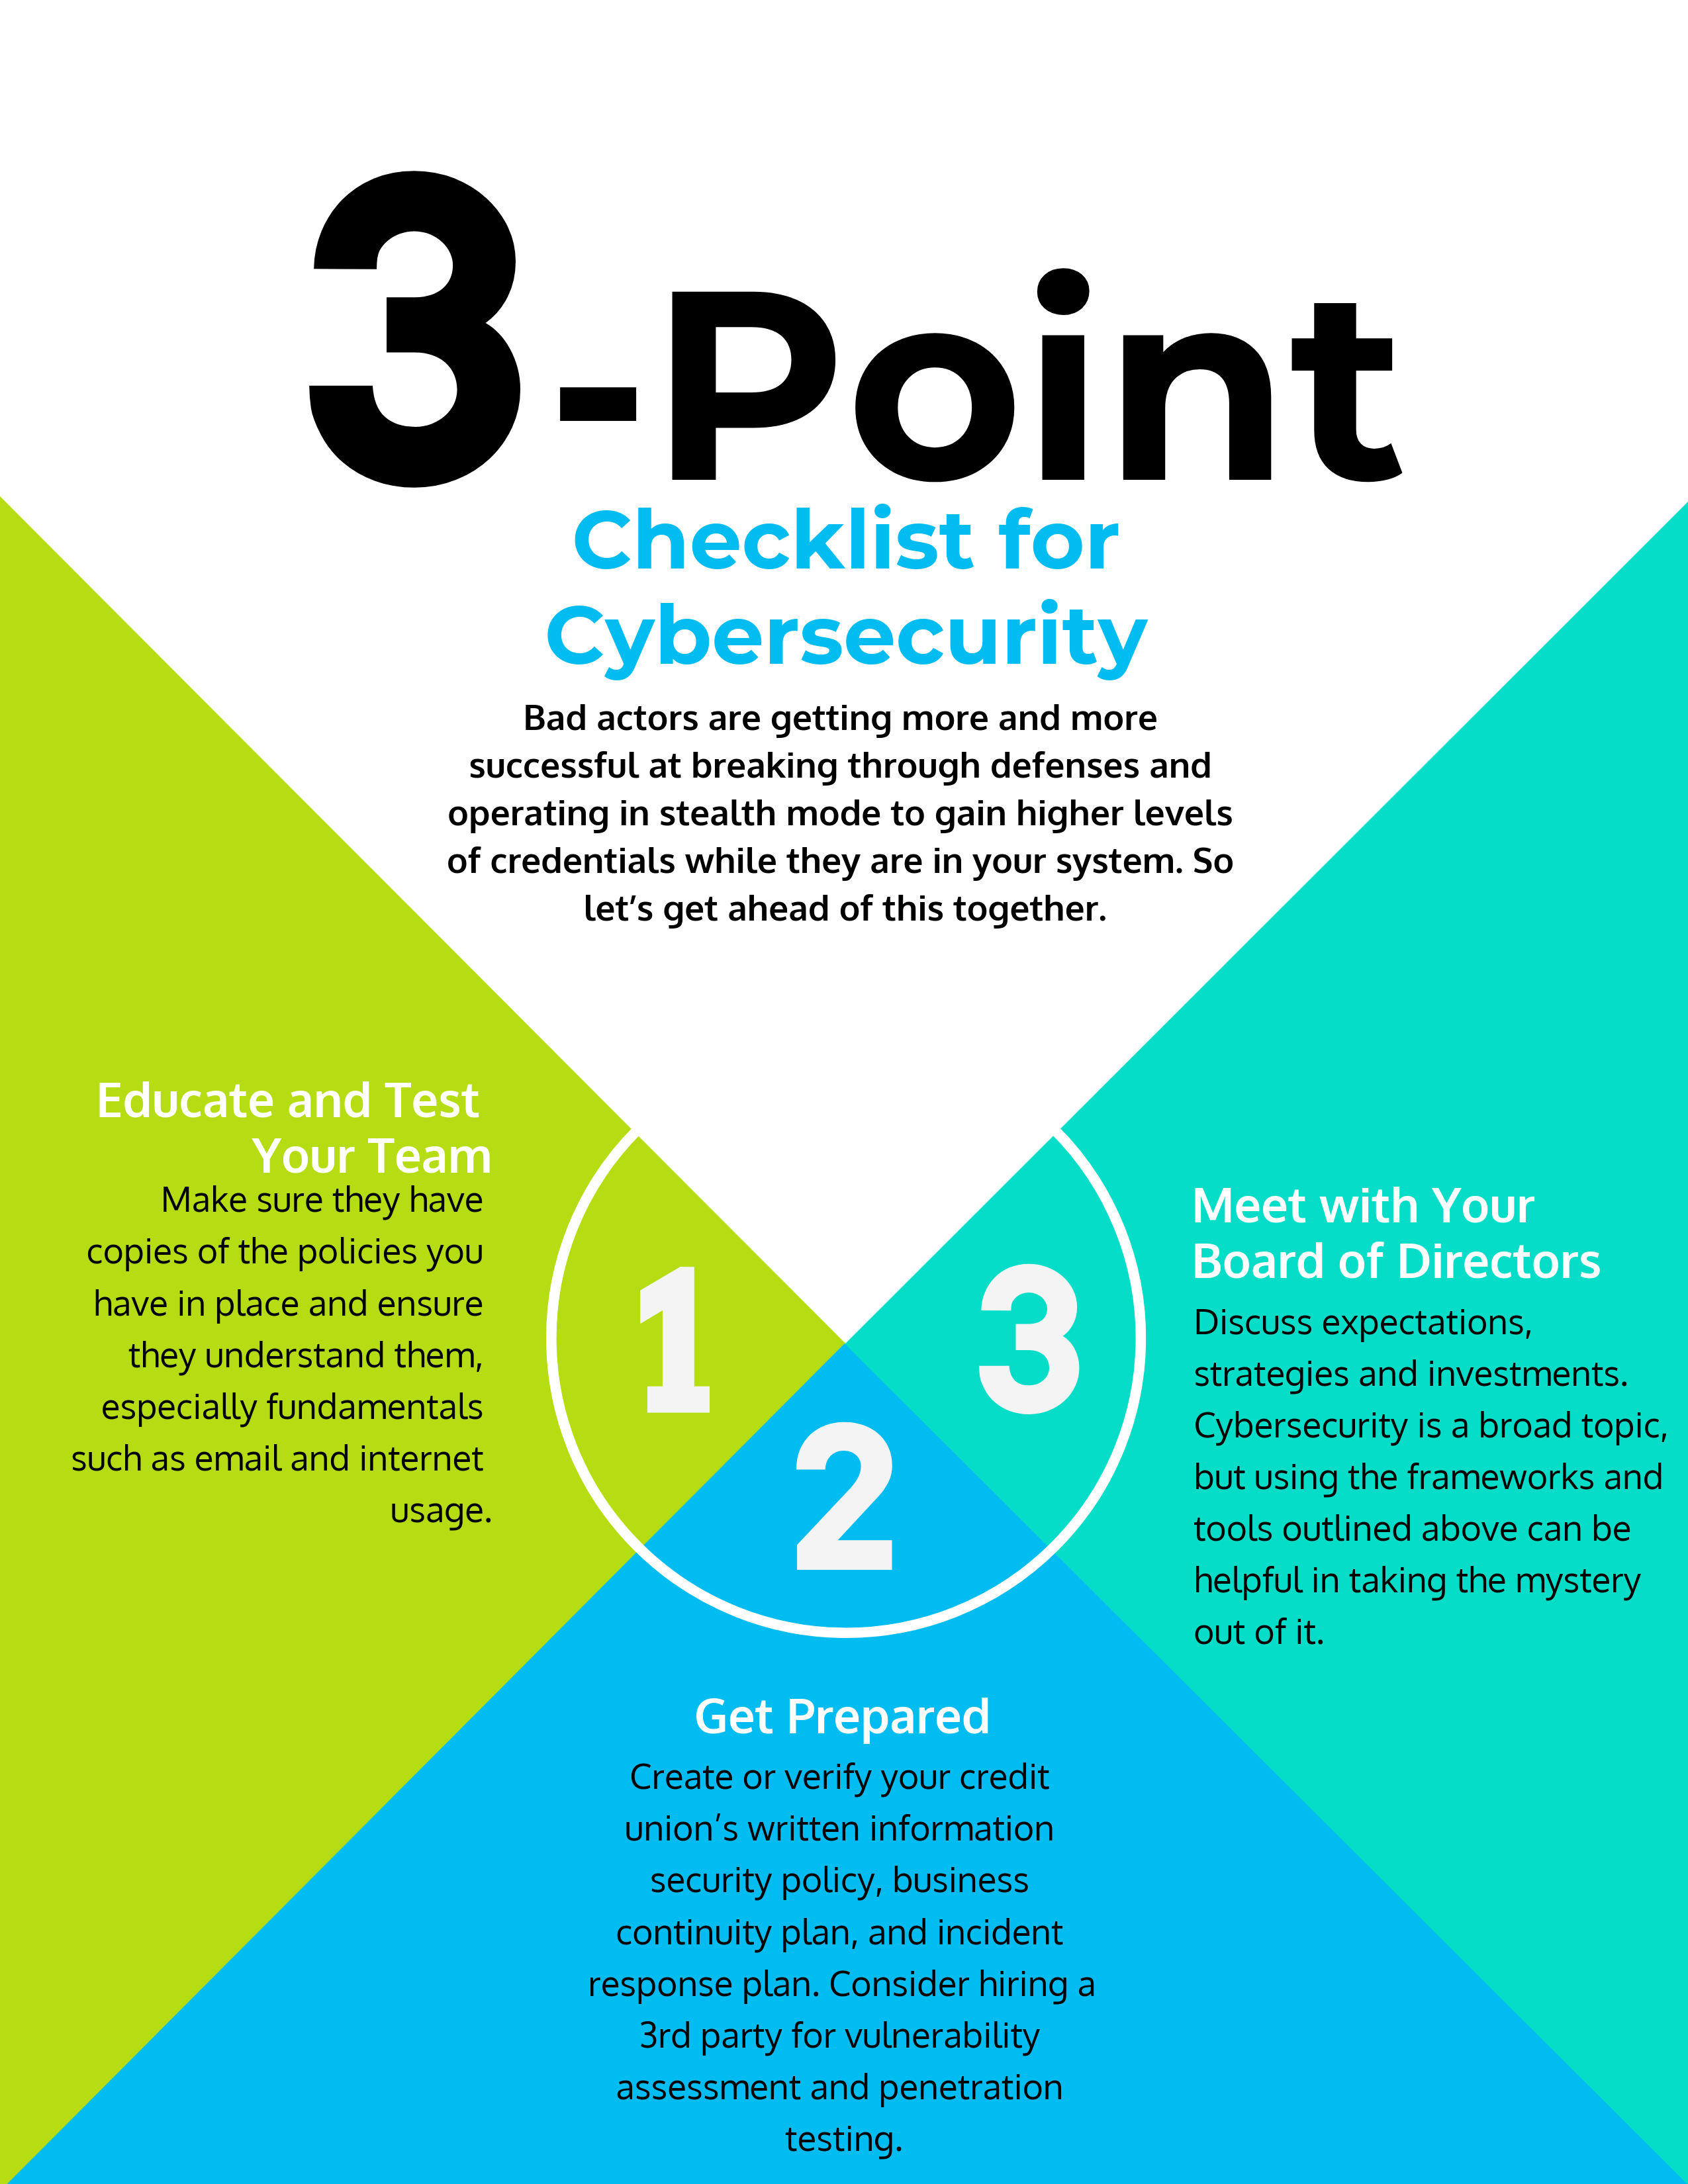 3-Point Checklist for Cybersecurity